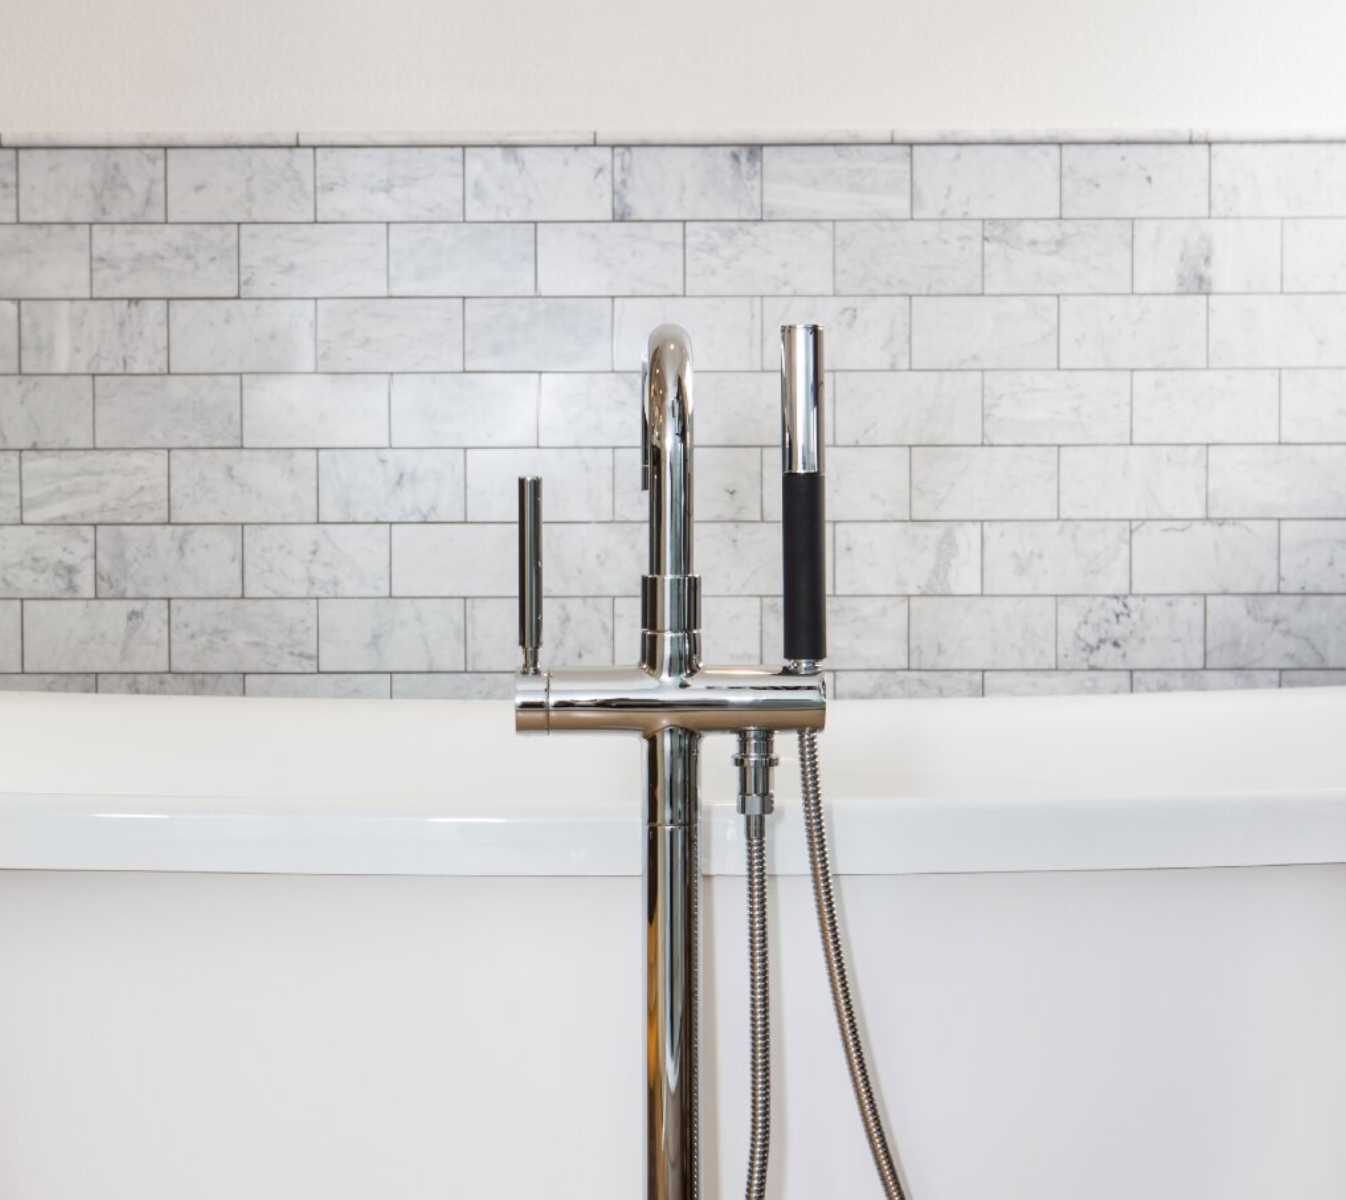 Conventional wisdom would have you believe your backsplash has to run up the entire wall, but that's just not so. Having a backsplash just a few inches above where the counter meets the wall is a great way to save money on materials, but still make a stylish and functional statement.